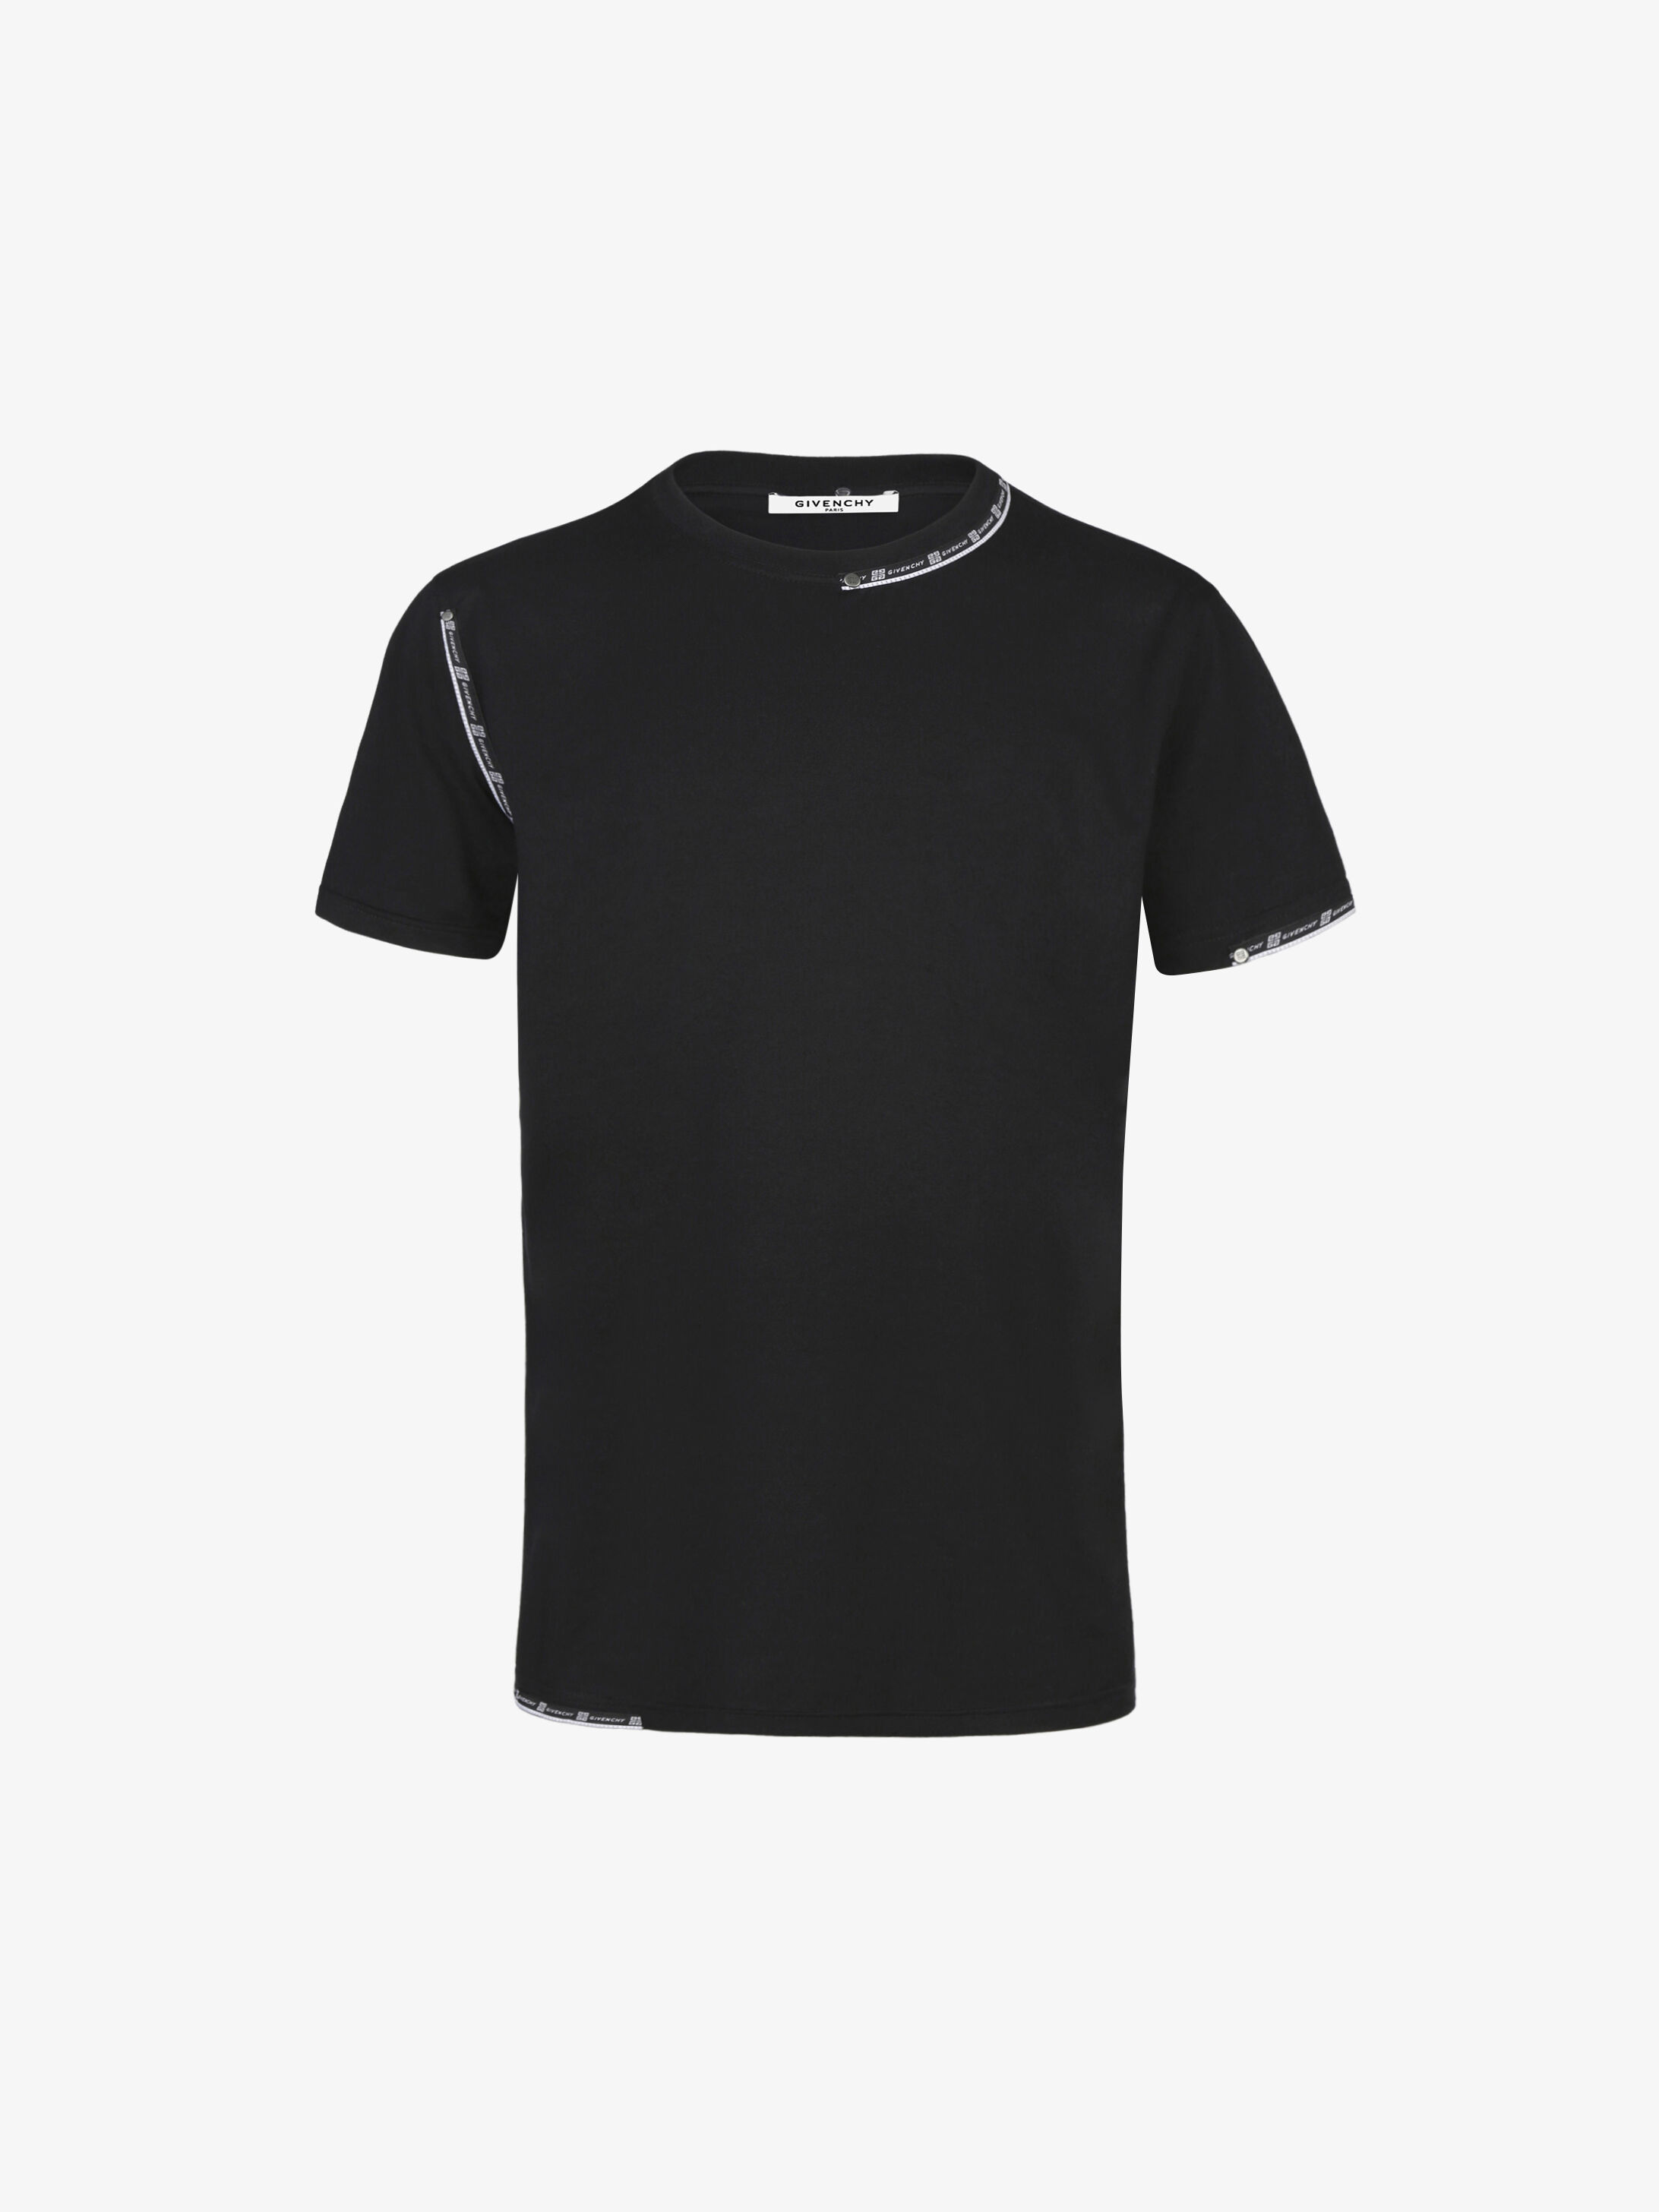 94d26d5e3fcdb8 Men s T-Shirts collection by Givenchy.